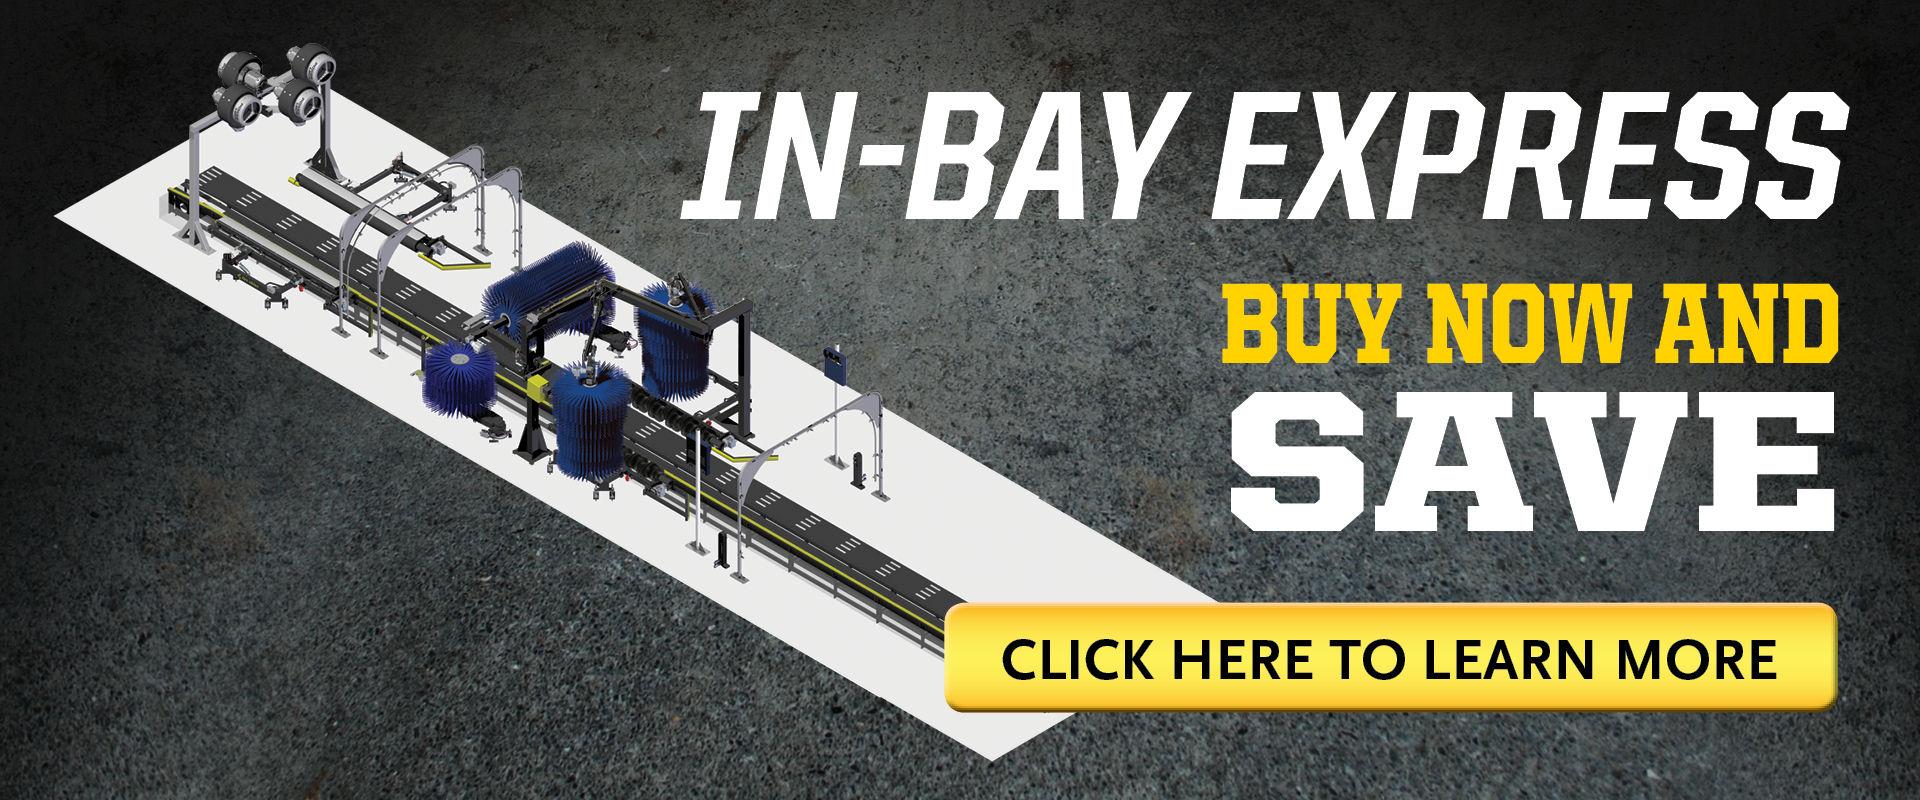 In Bay Express Promotion | MacNeil Wash Systems